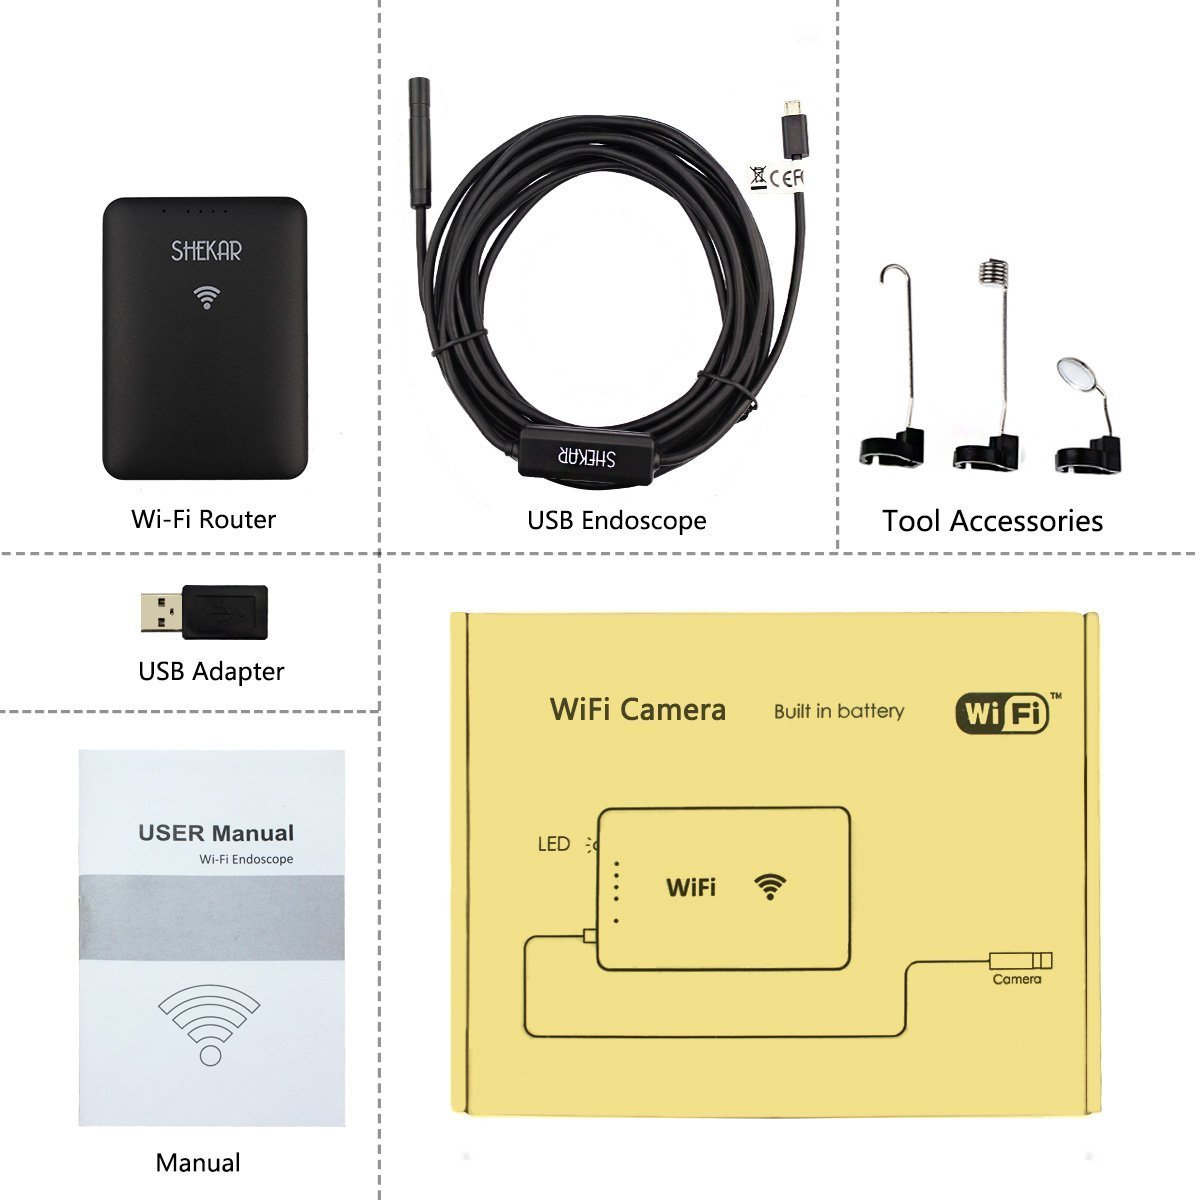 SHEKAR 5M Wireless Inspection Camera WiFi Borescope 2.0 Megapixels HD Snake Camera Tube for Android Smartphone and iOS iPhone iPad Tablet-16.4ft 885852 WiFi Endoscope Camera Samsung